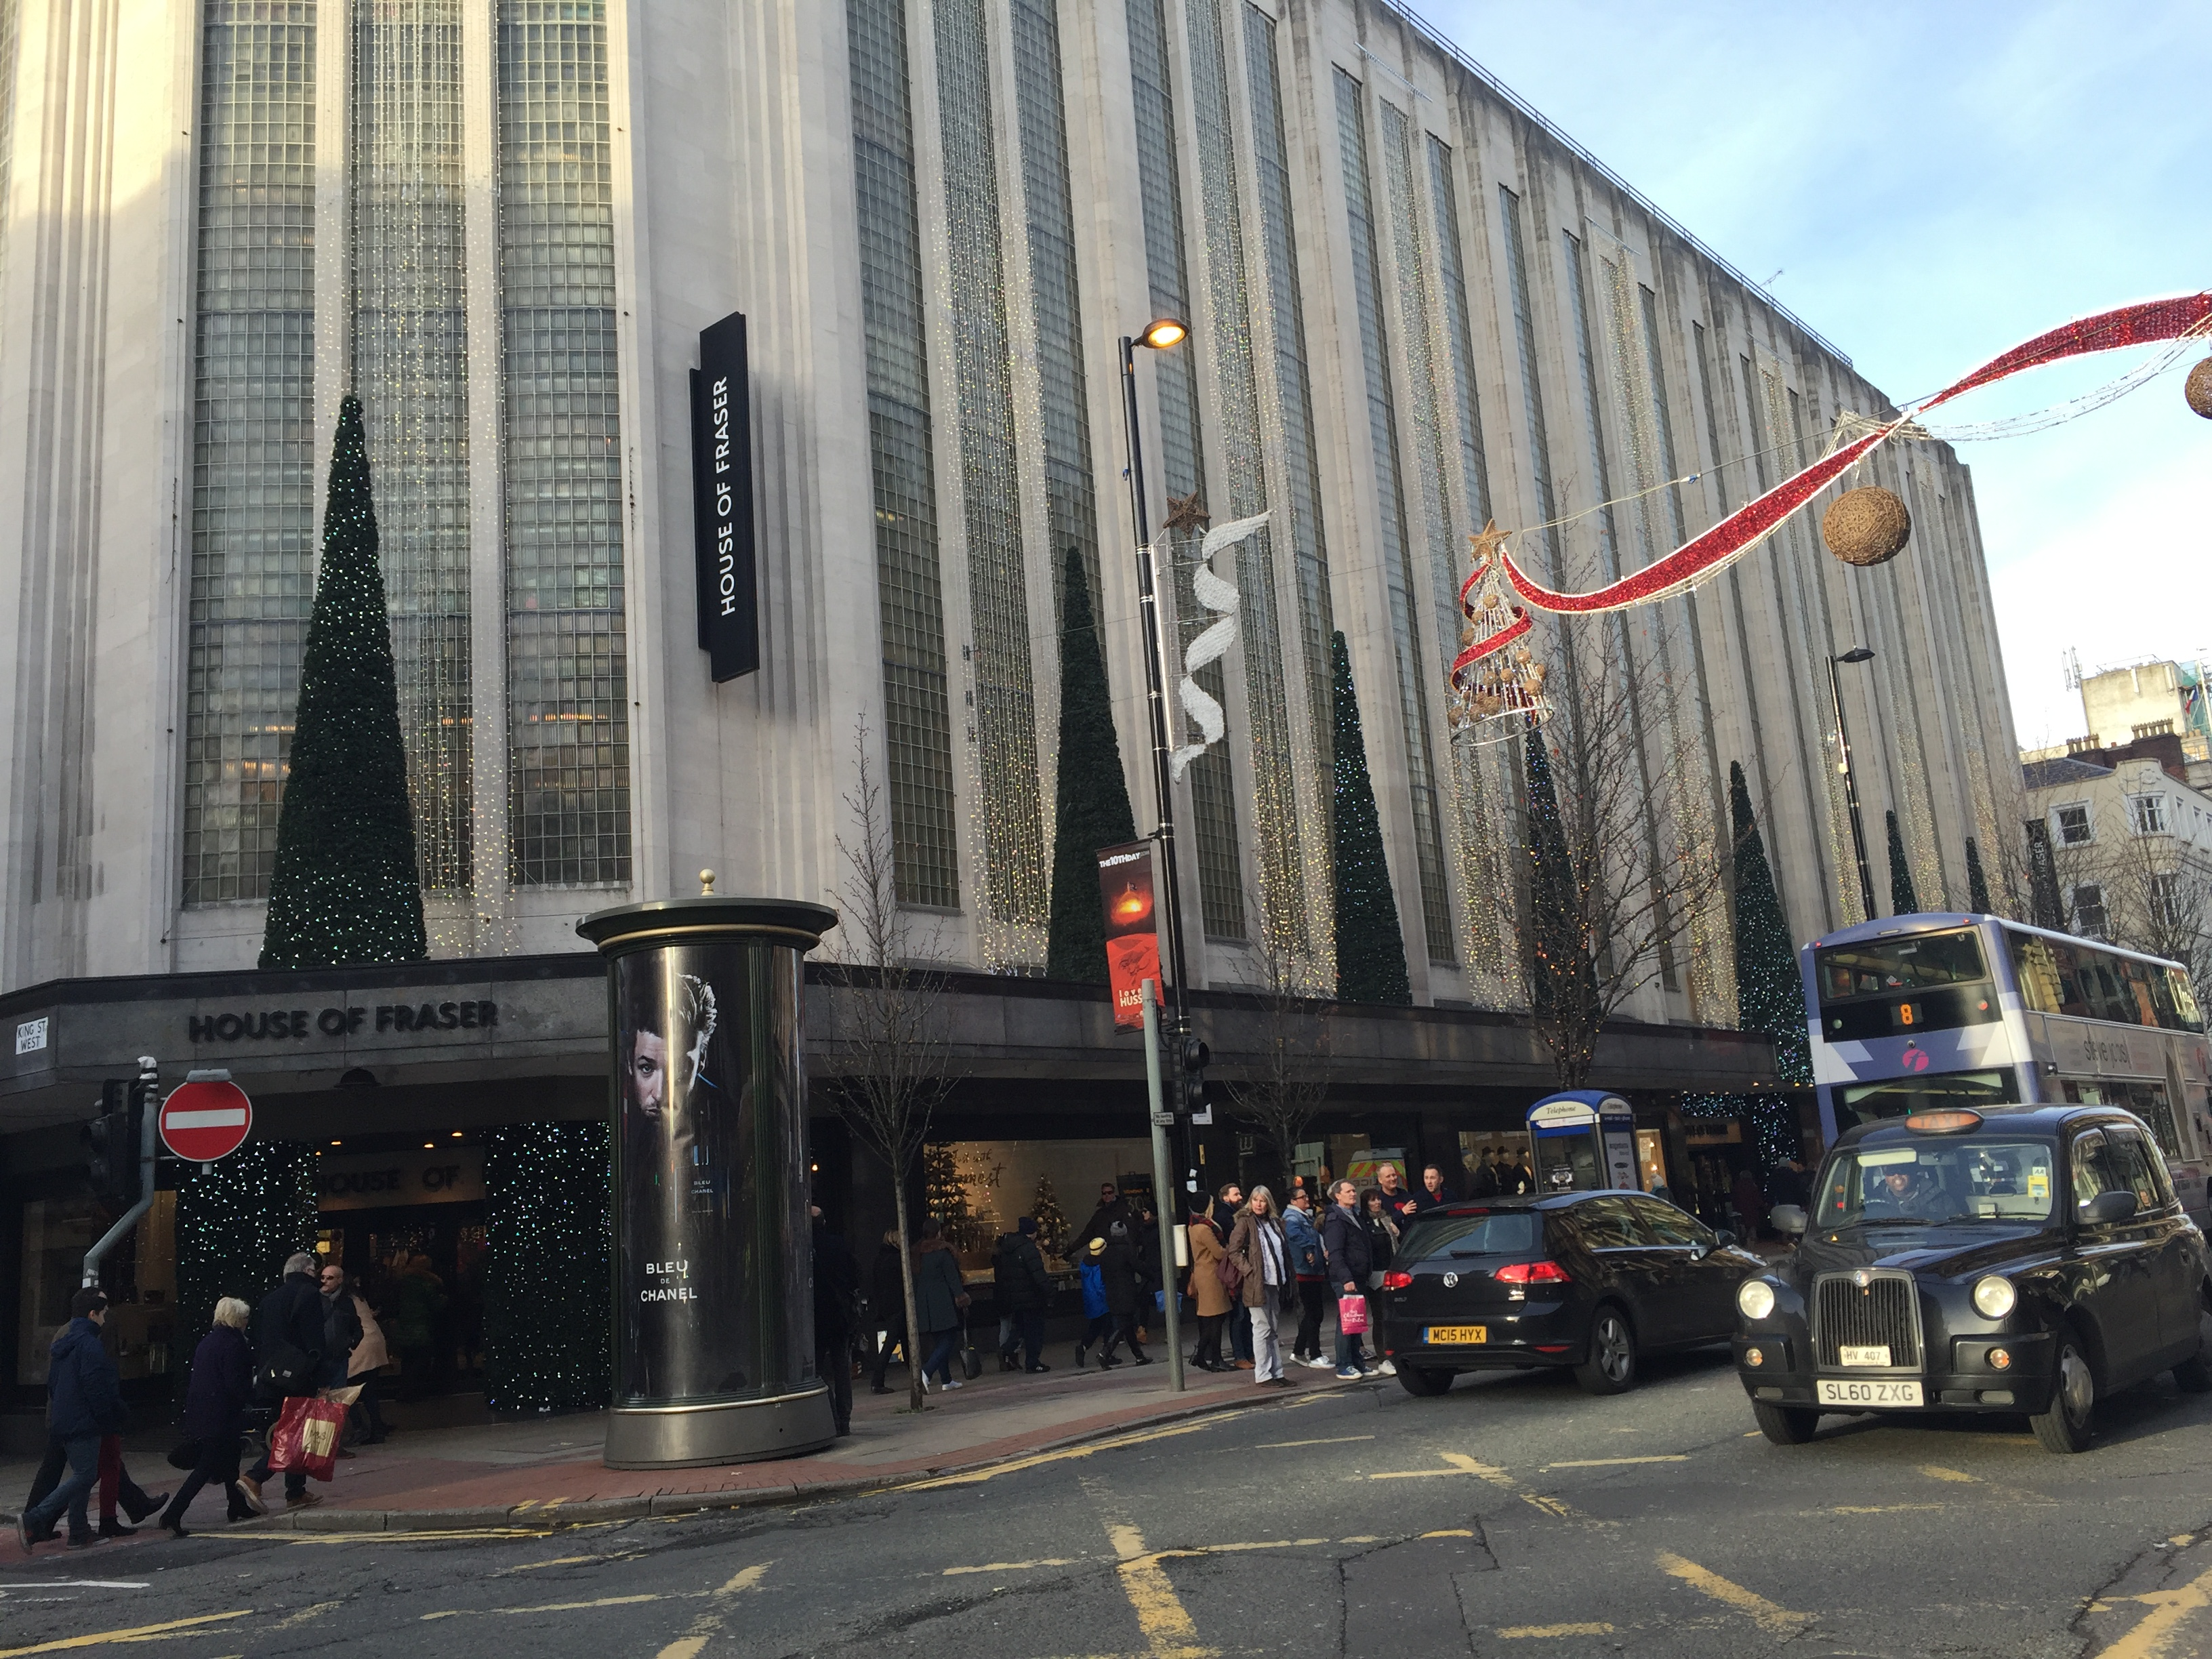 An image of the outside of House Of Fraser in Manchester city centre.